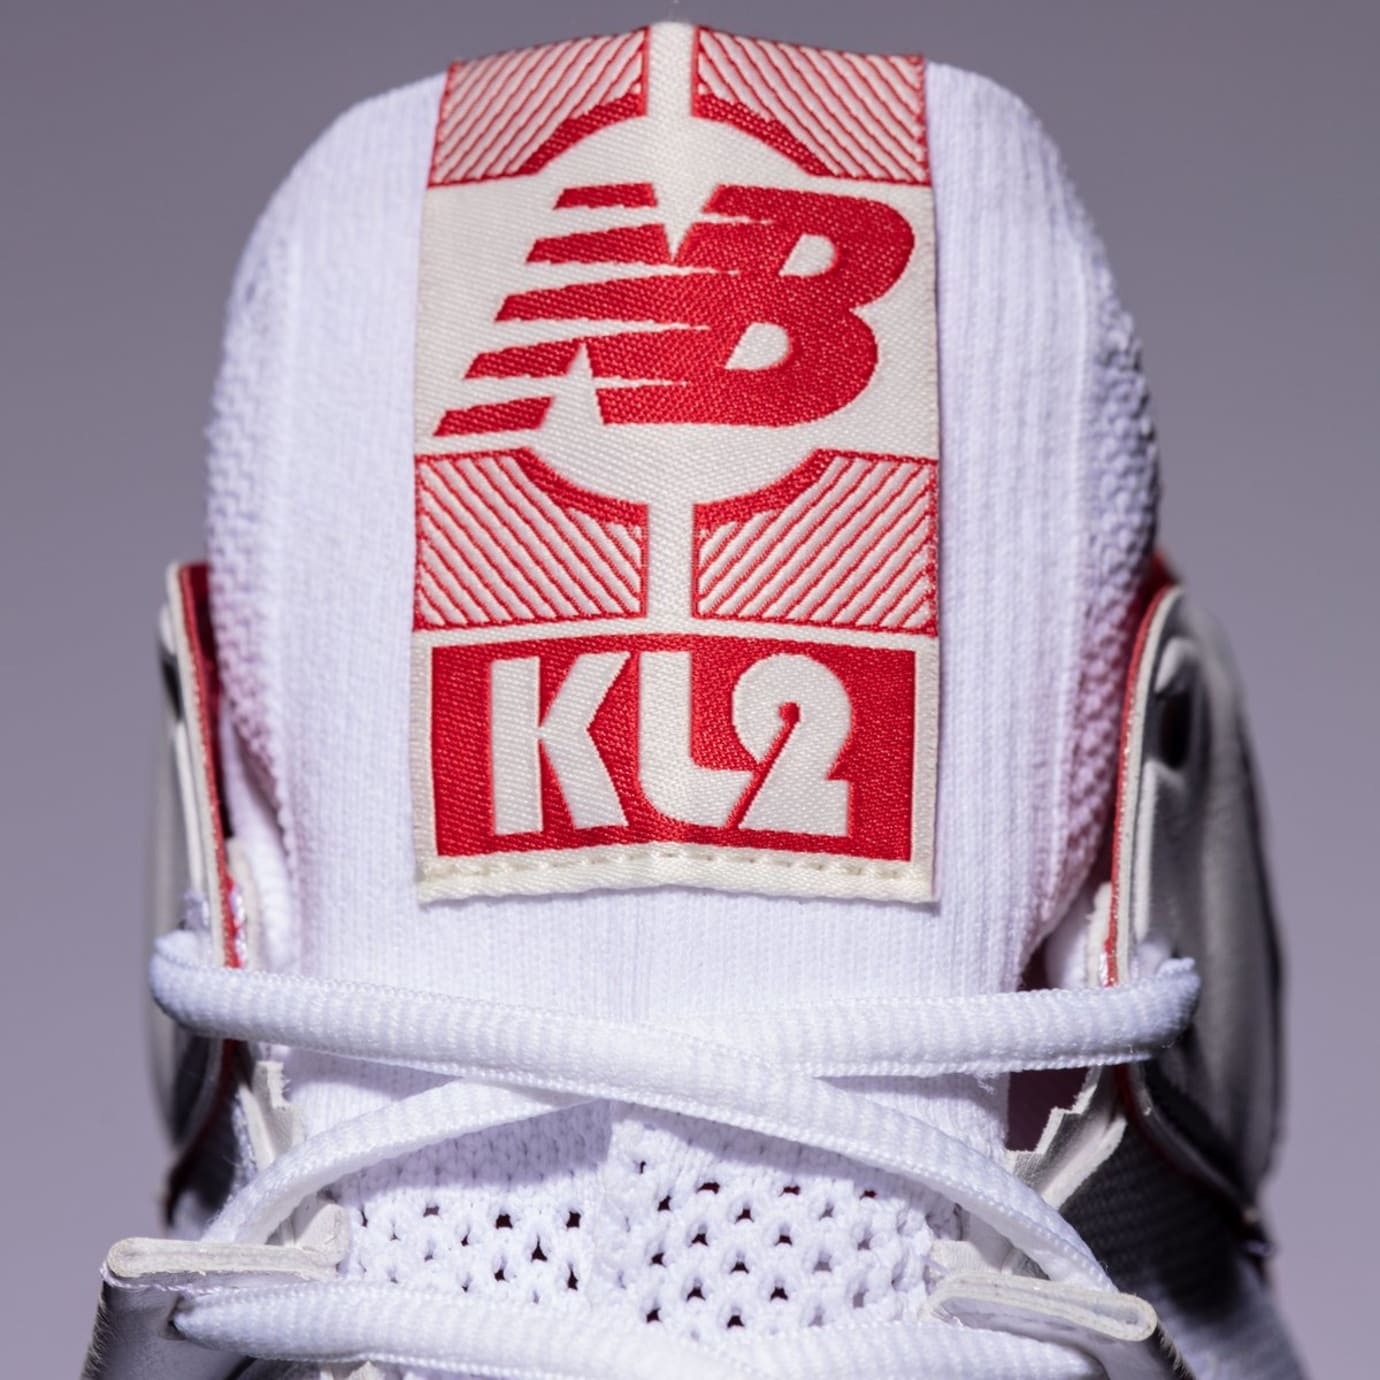 New Balance OMN1S Kawhi Leonard All-Star Game PE 'White/Red' 1